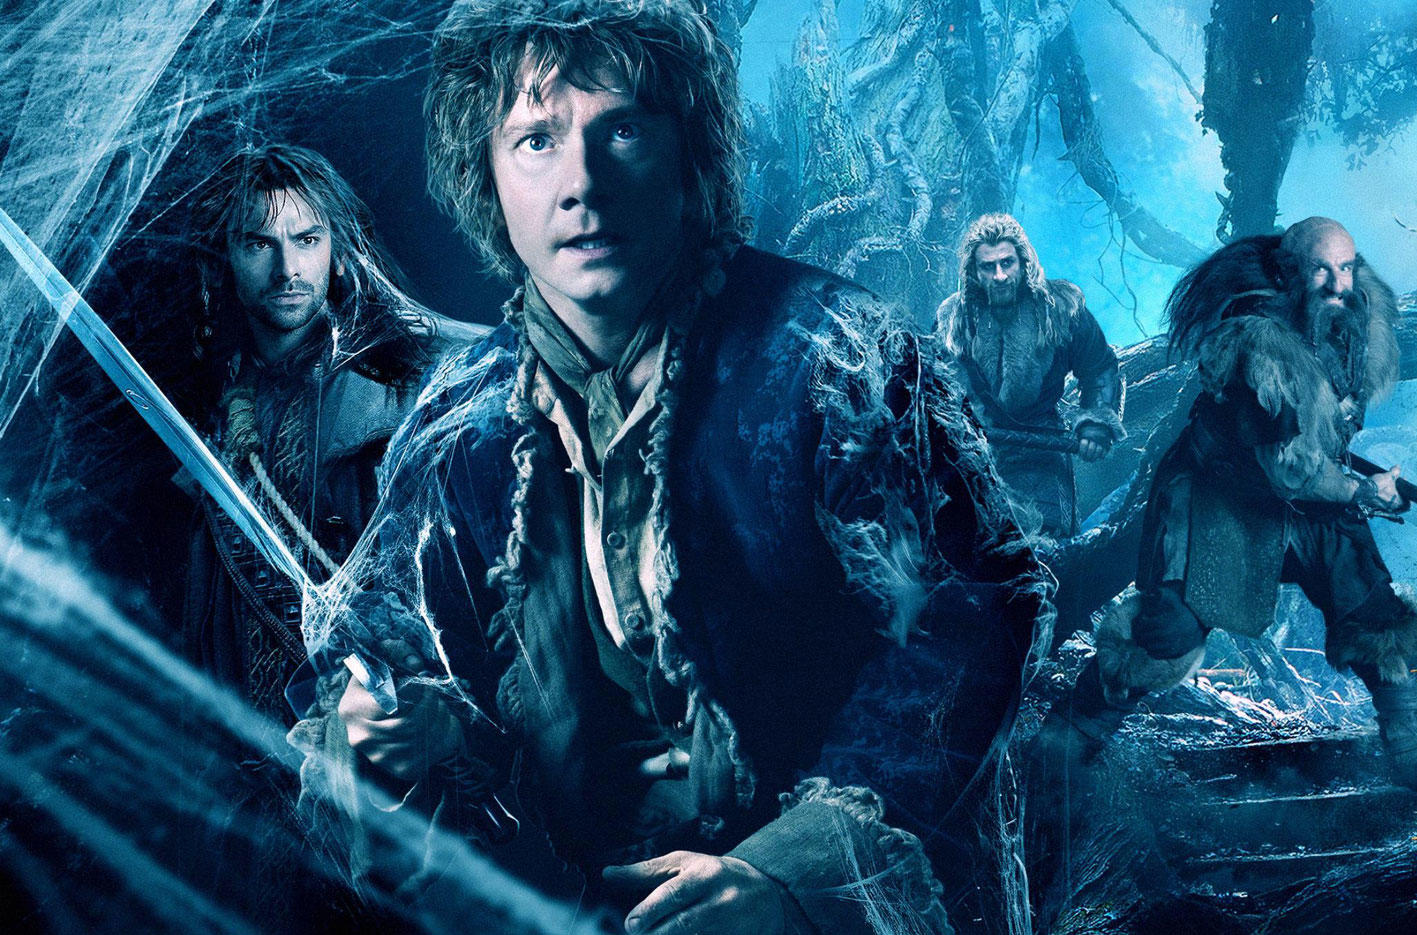 New Banners for 'The Hobbit: Desolation of Smaug' Arrive in Advance of New Trailer